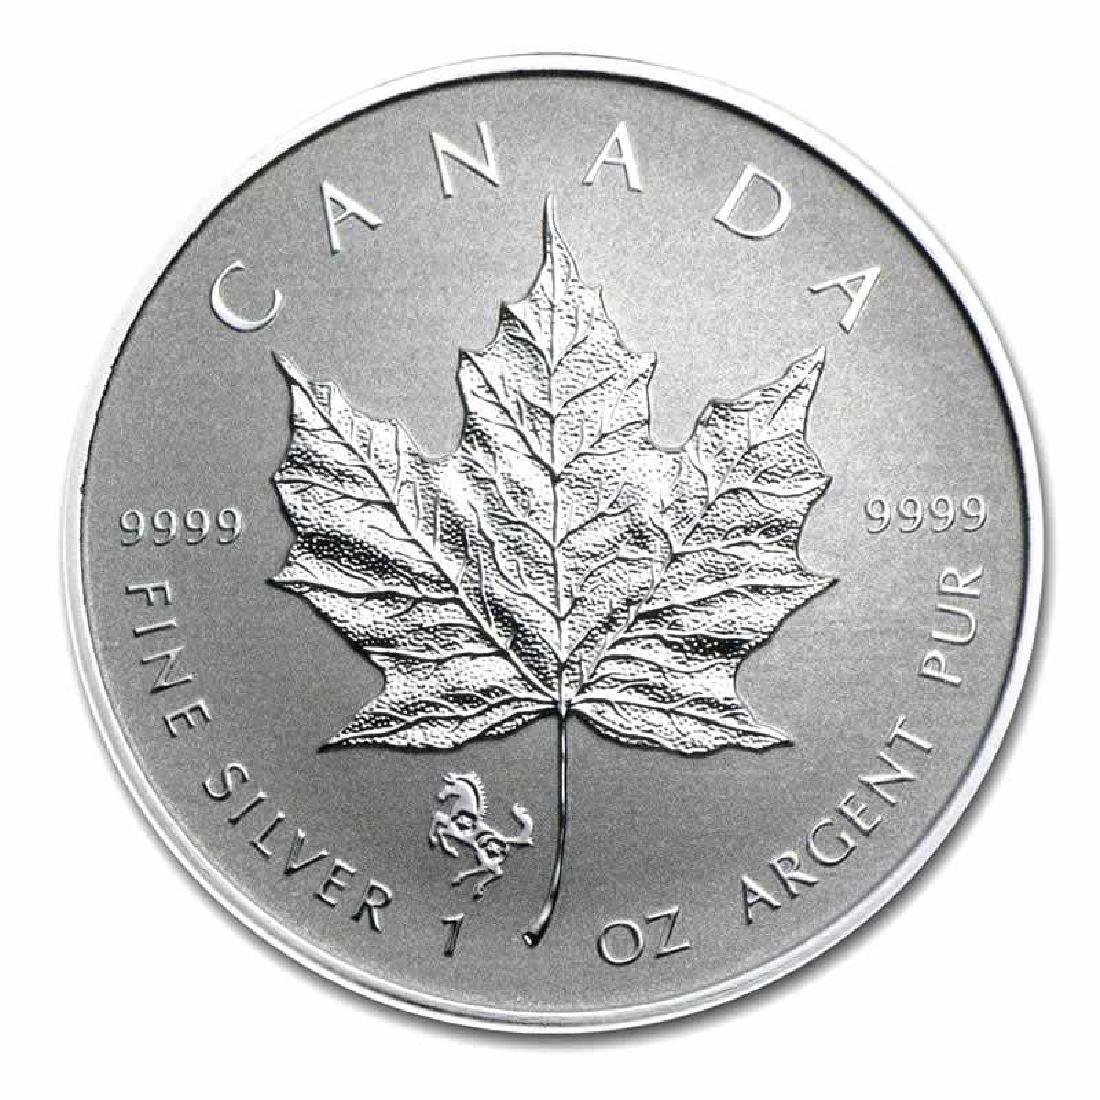 2014 Canada 1 oz. Silver Maple Leaf Reverse Proof Horse